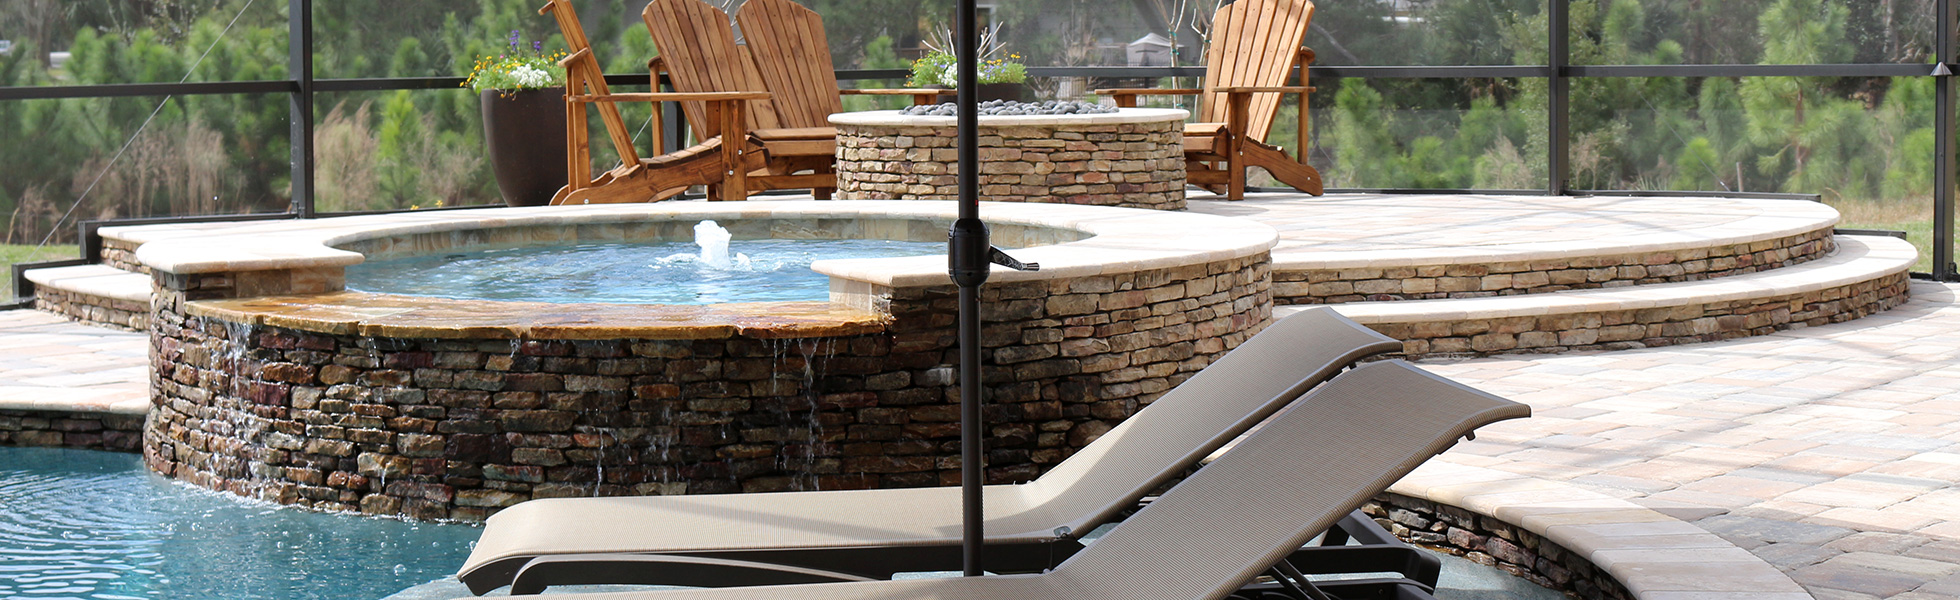 Custom Spa Fire Pit By Paradise Pools Design